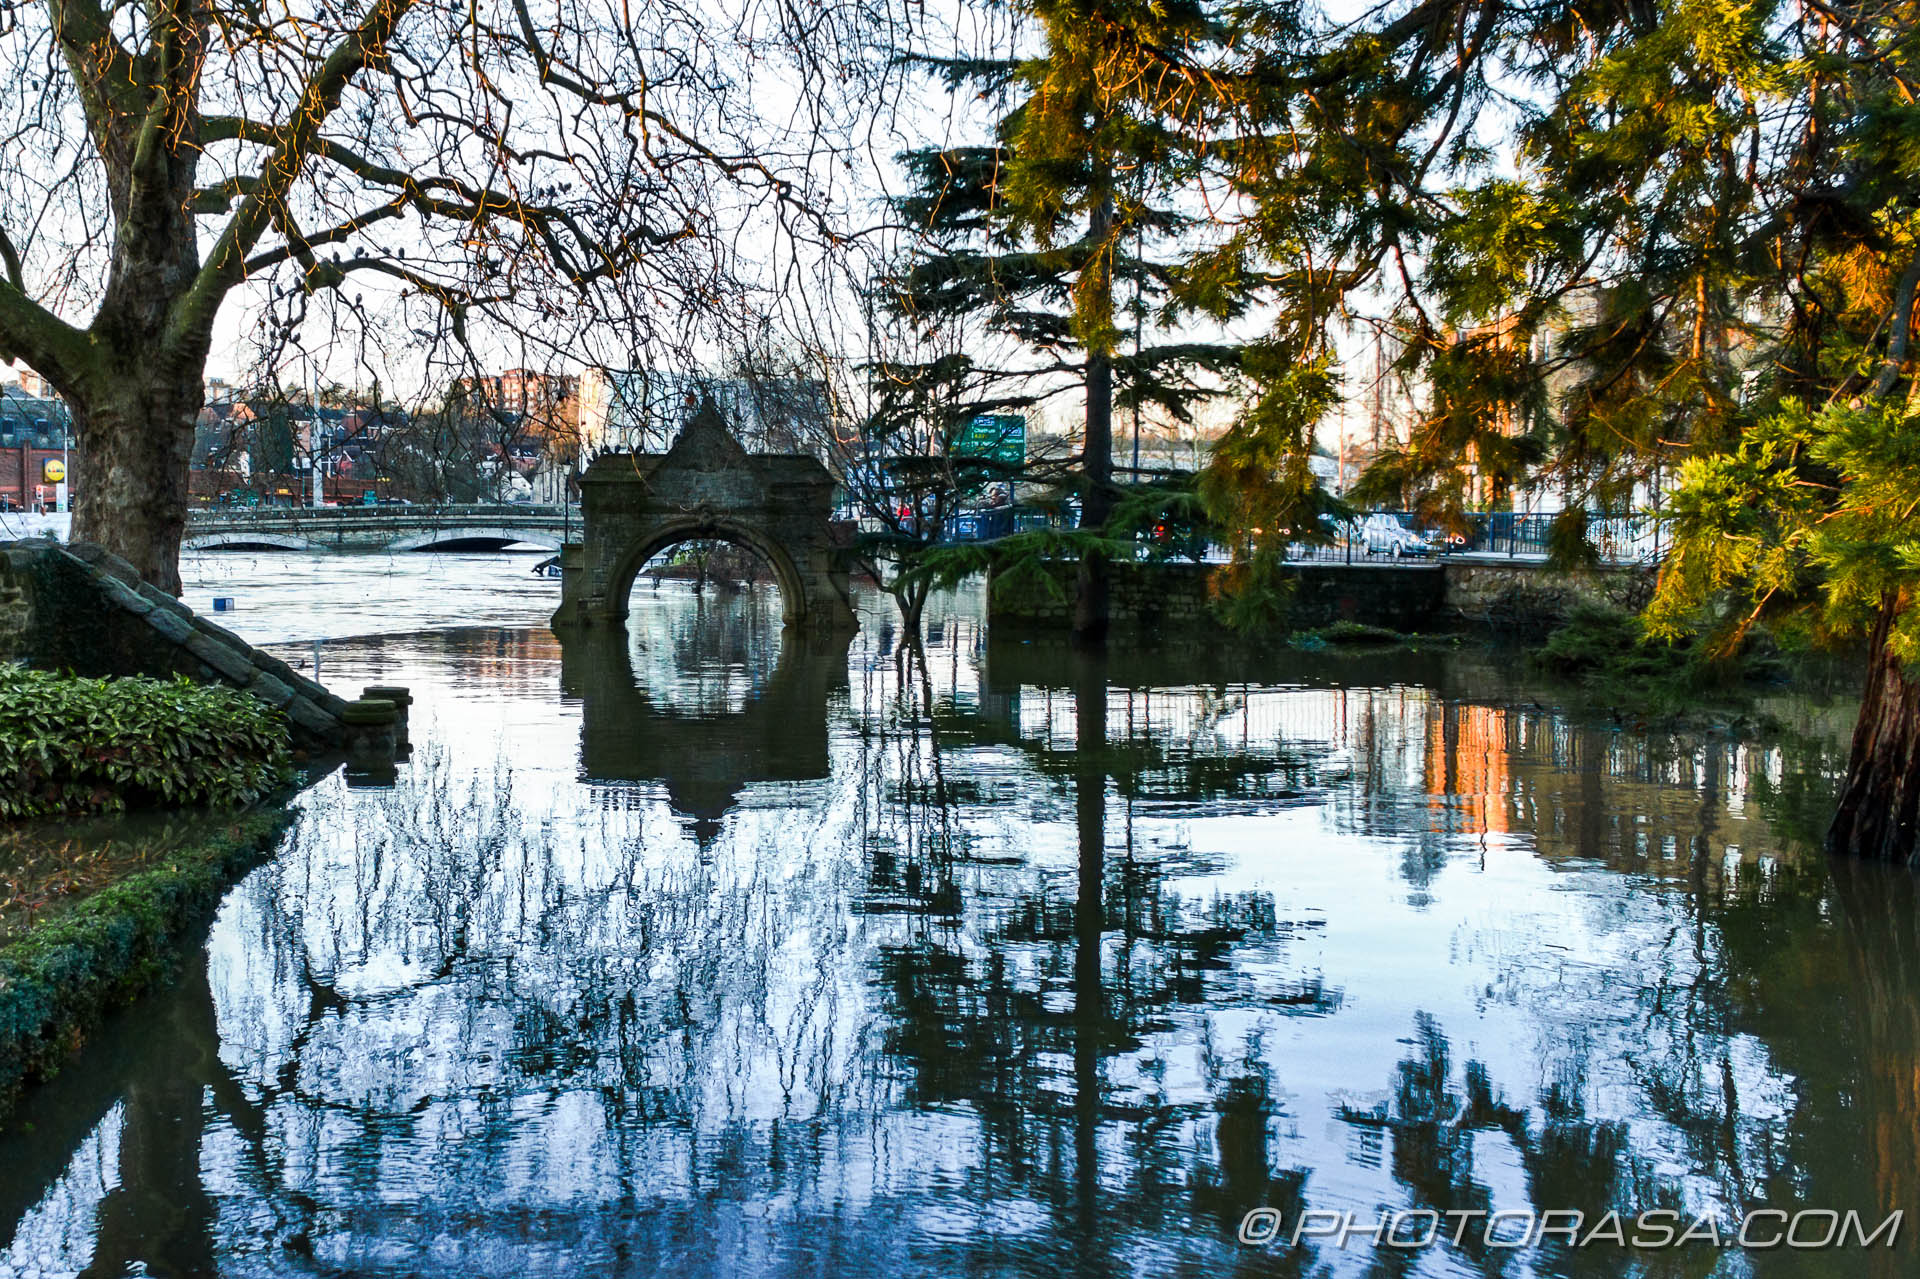 http://photorasa.com/wet-xmas-maidstone-river-medway-floods-town-centre/riverside-entrance-to-archbishops-palace-flooded-with-water/